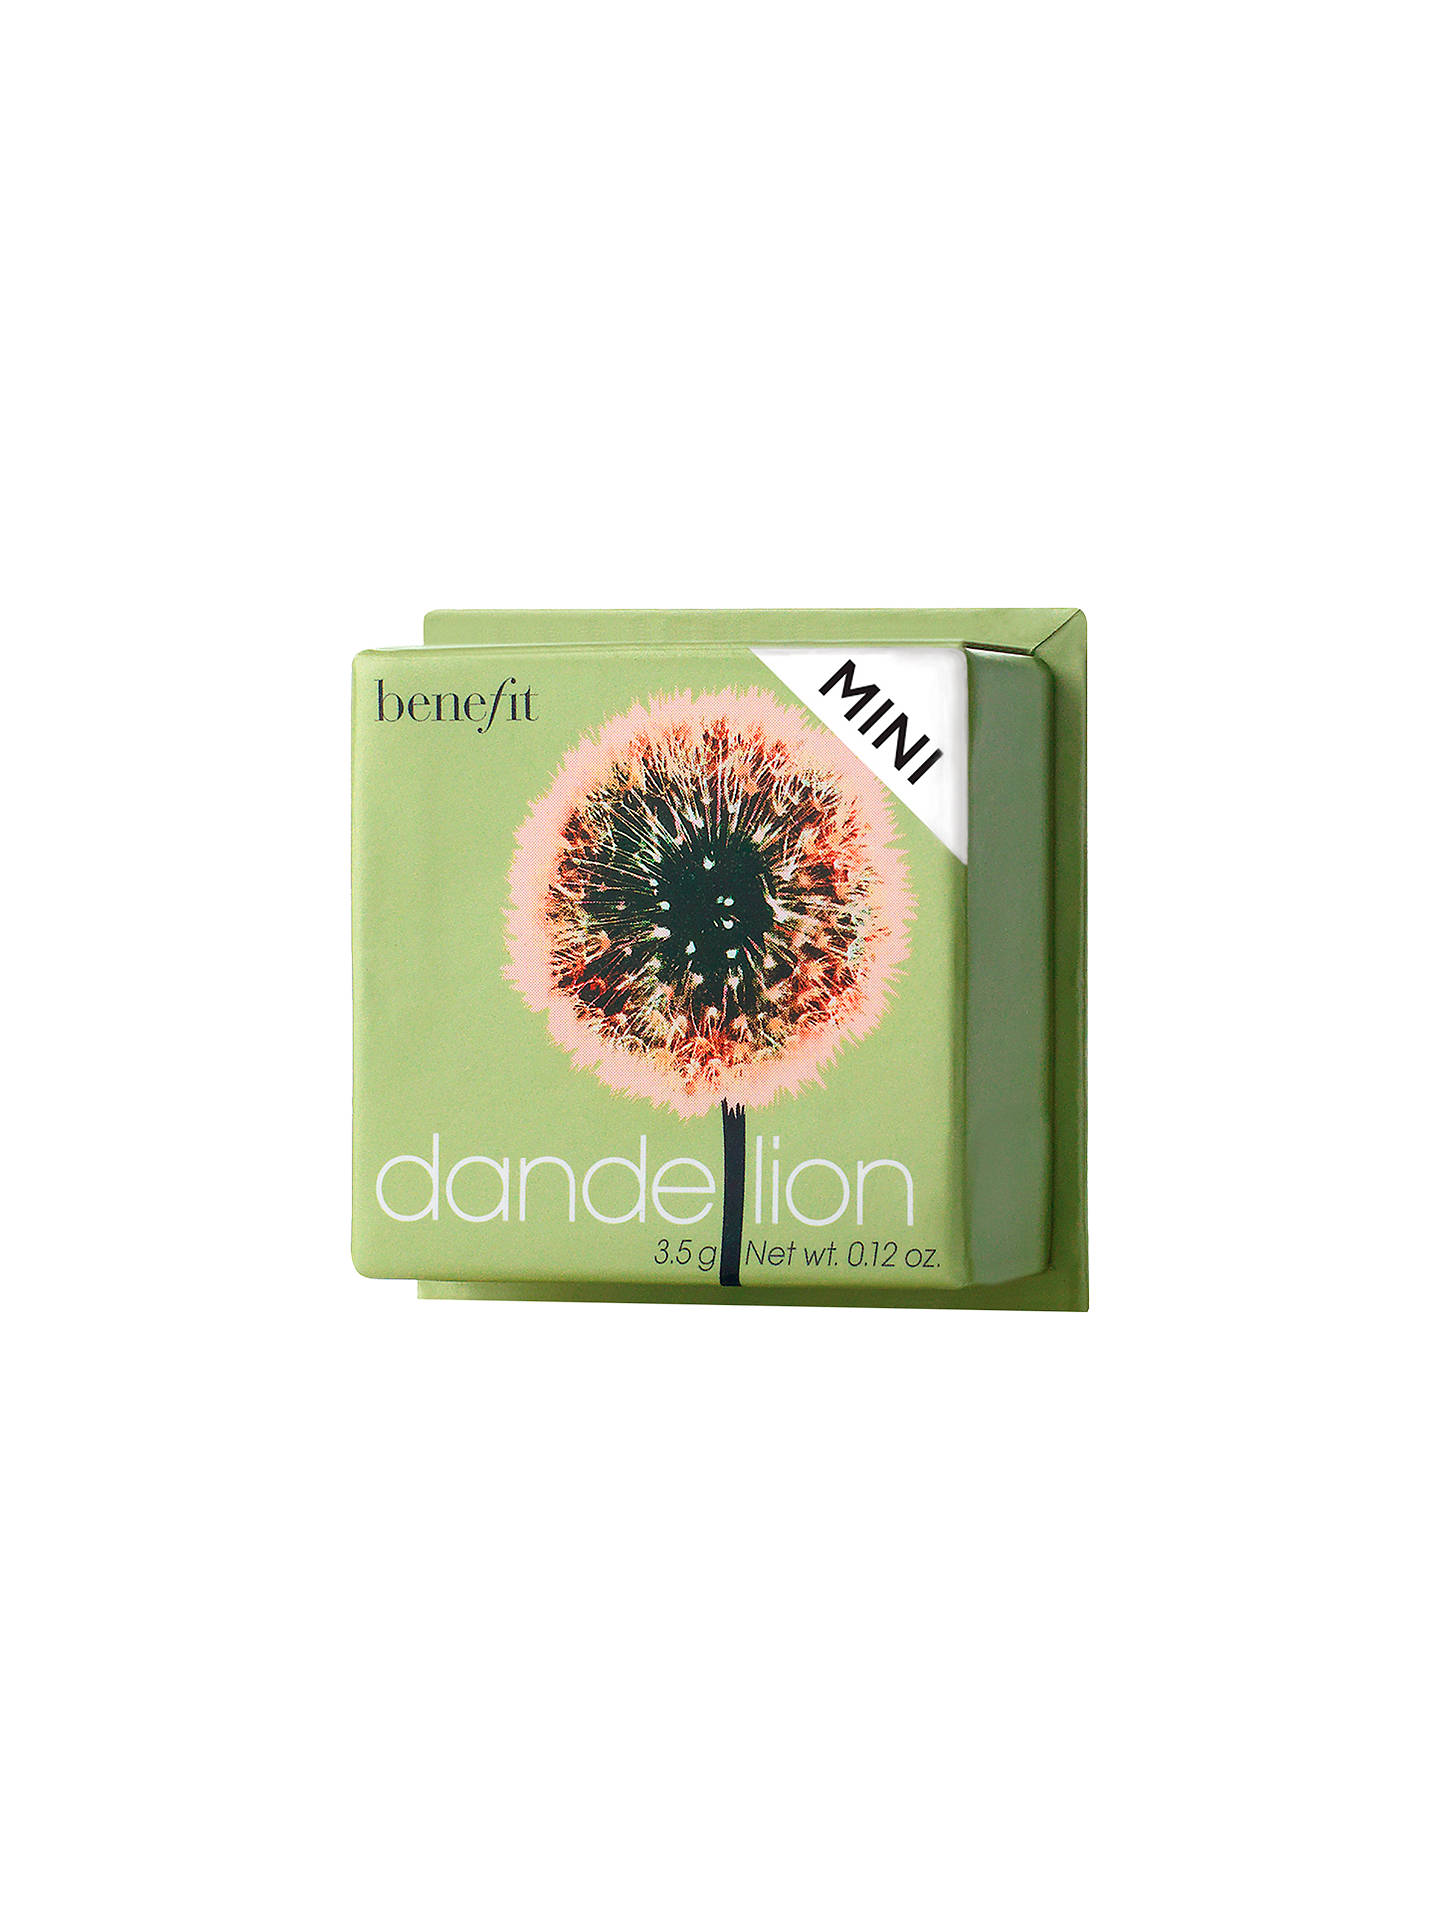 Buy Benefit Stocking Stuffer Dandelion, 3.5g Online at johnlewis.com